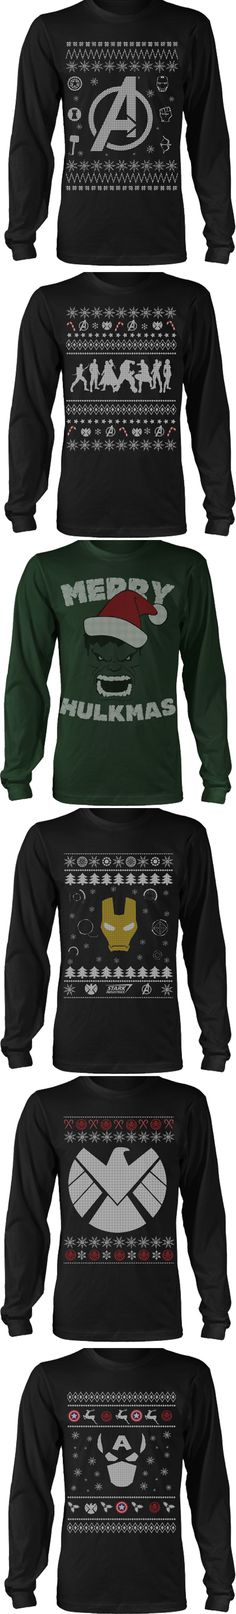 LIMITED EDITION Avengers Ugly Sweater designs. >> I NEED THEM ALL